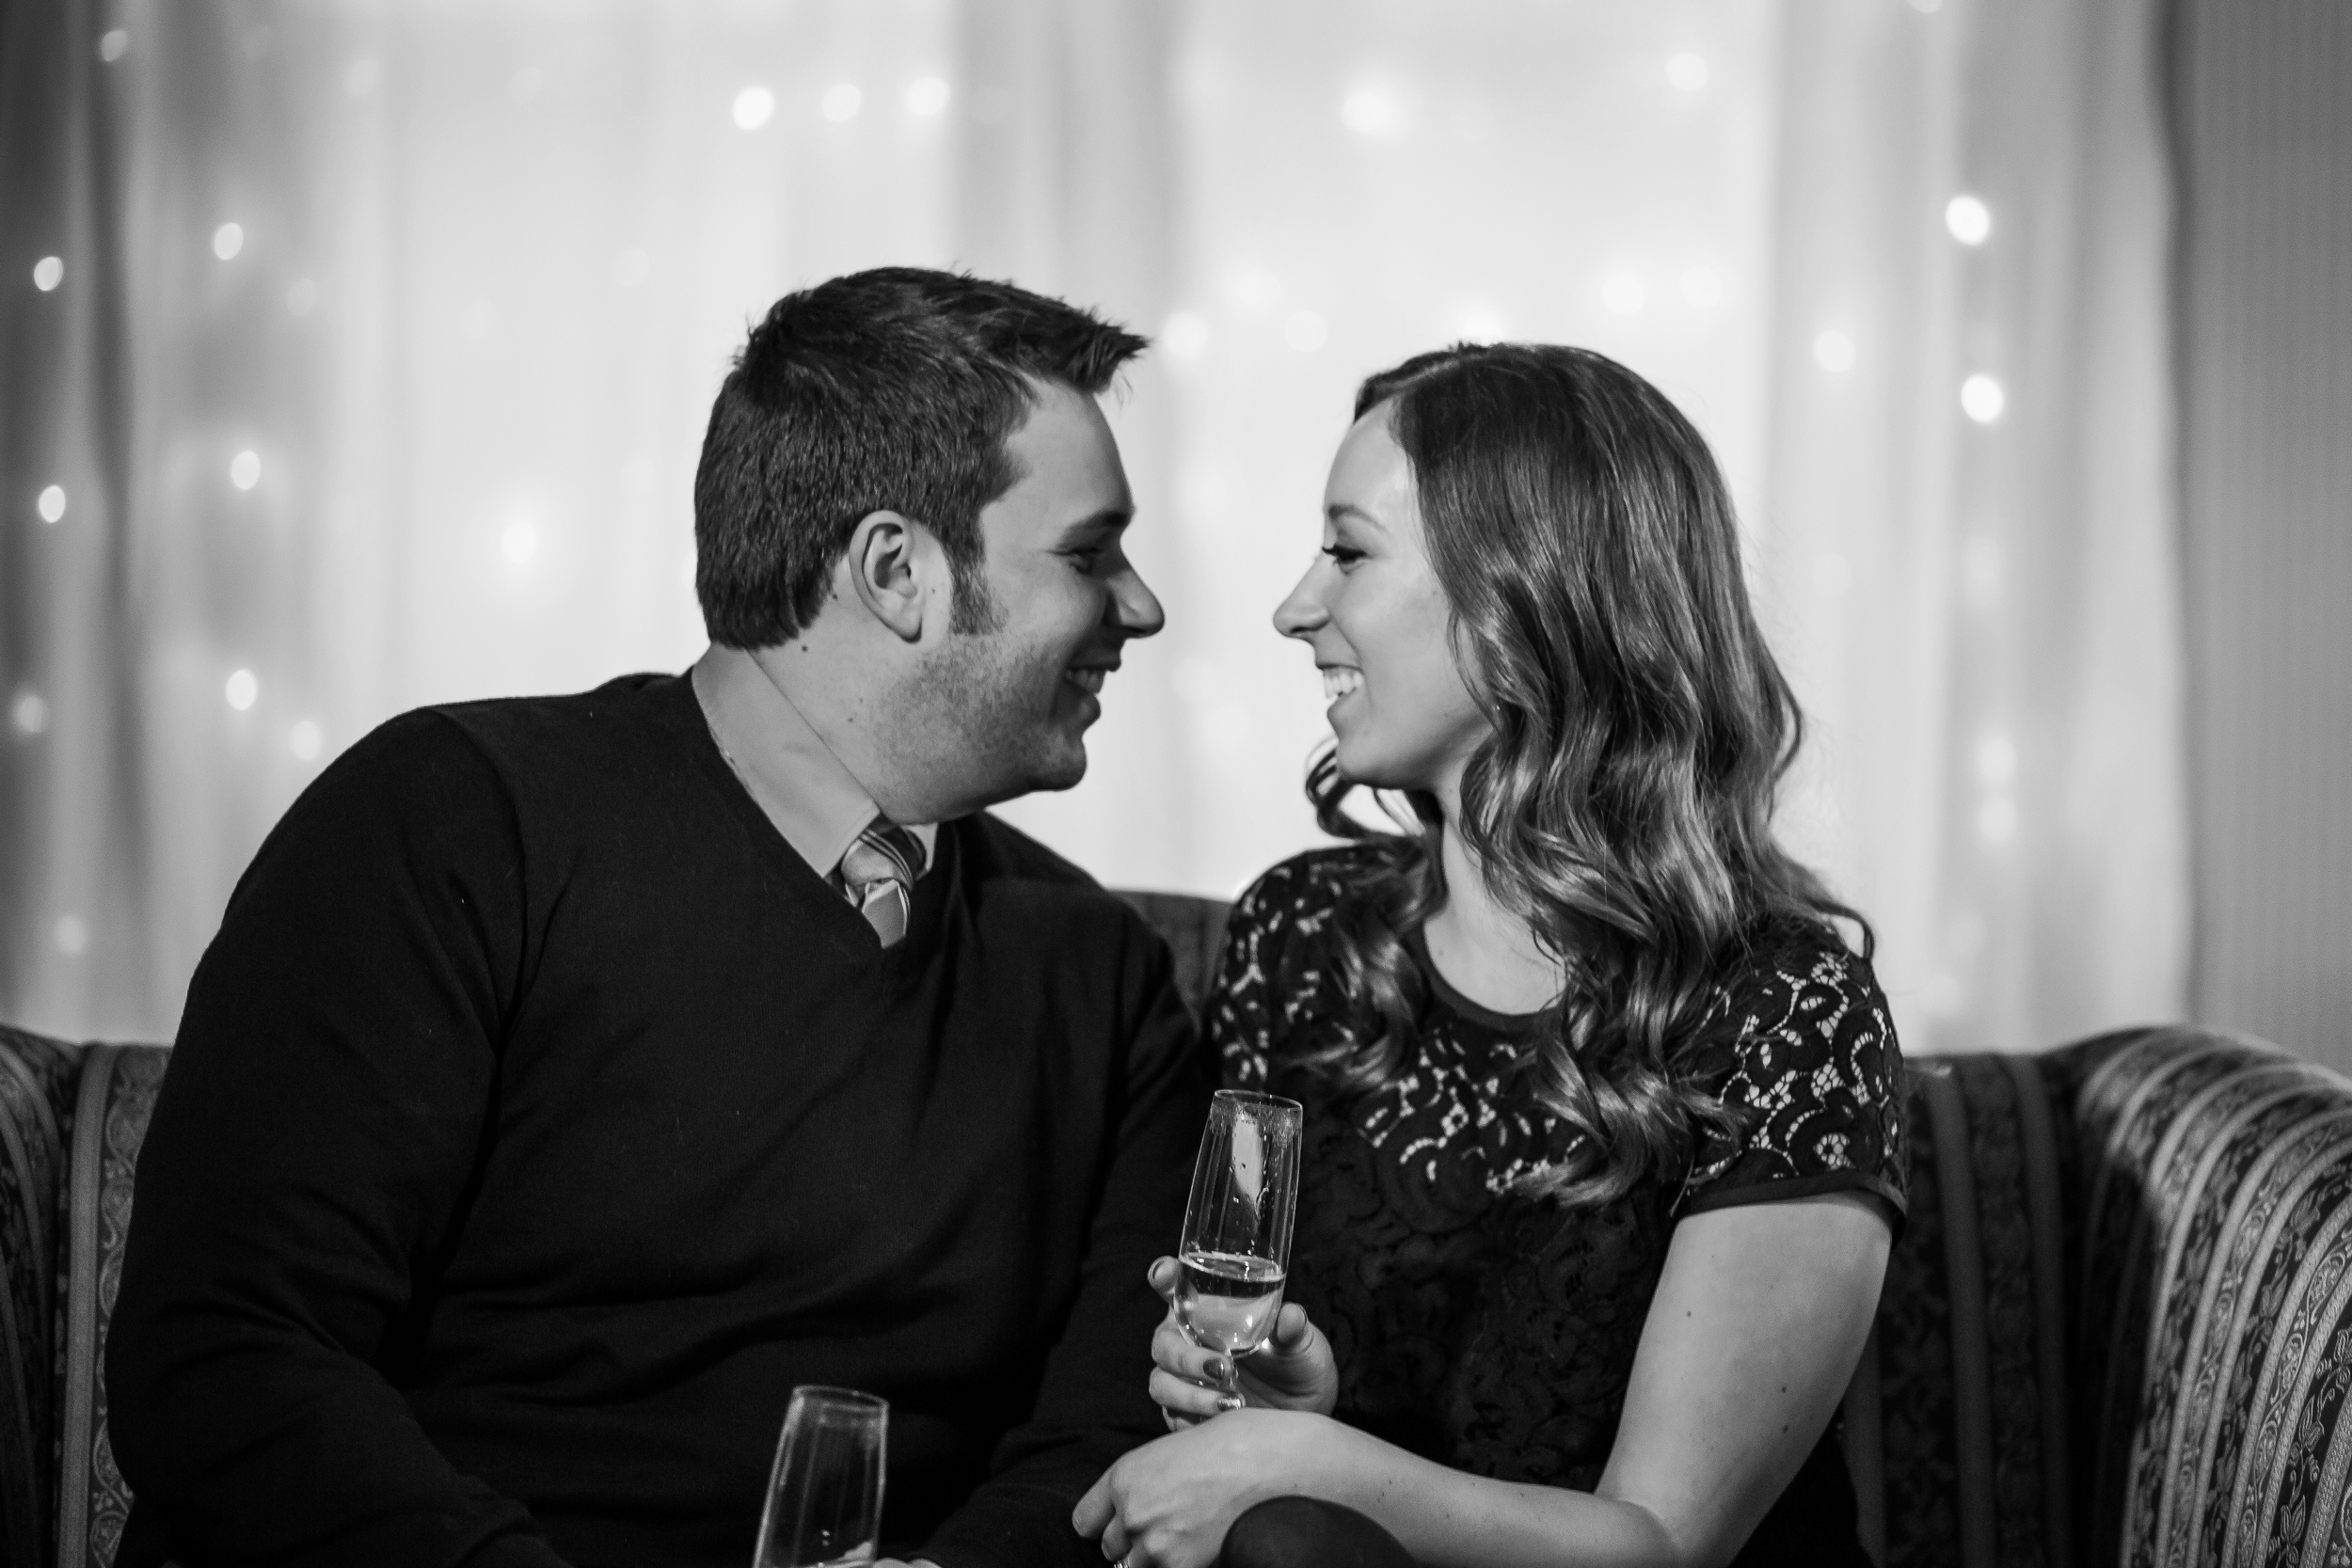 Meriel-Joe-engagement-photos-9.jpg